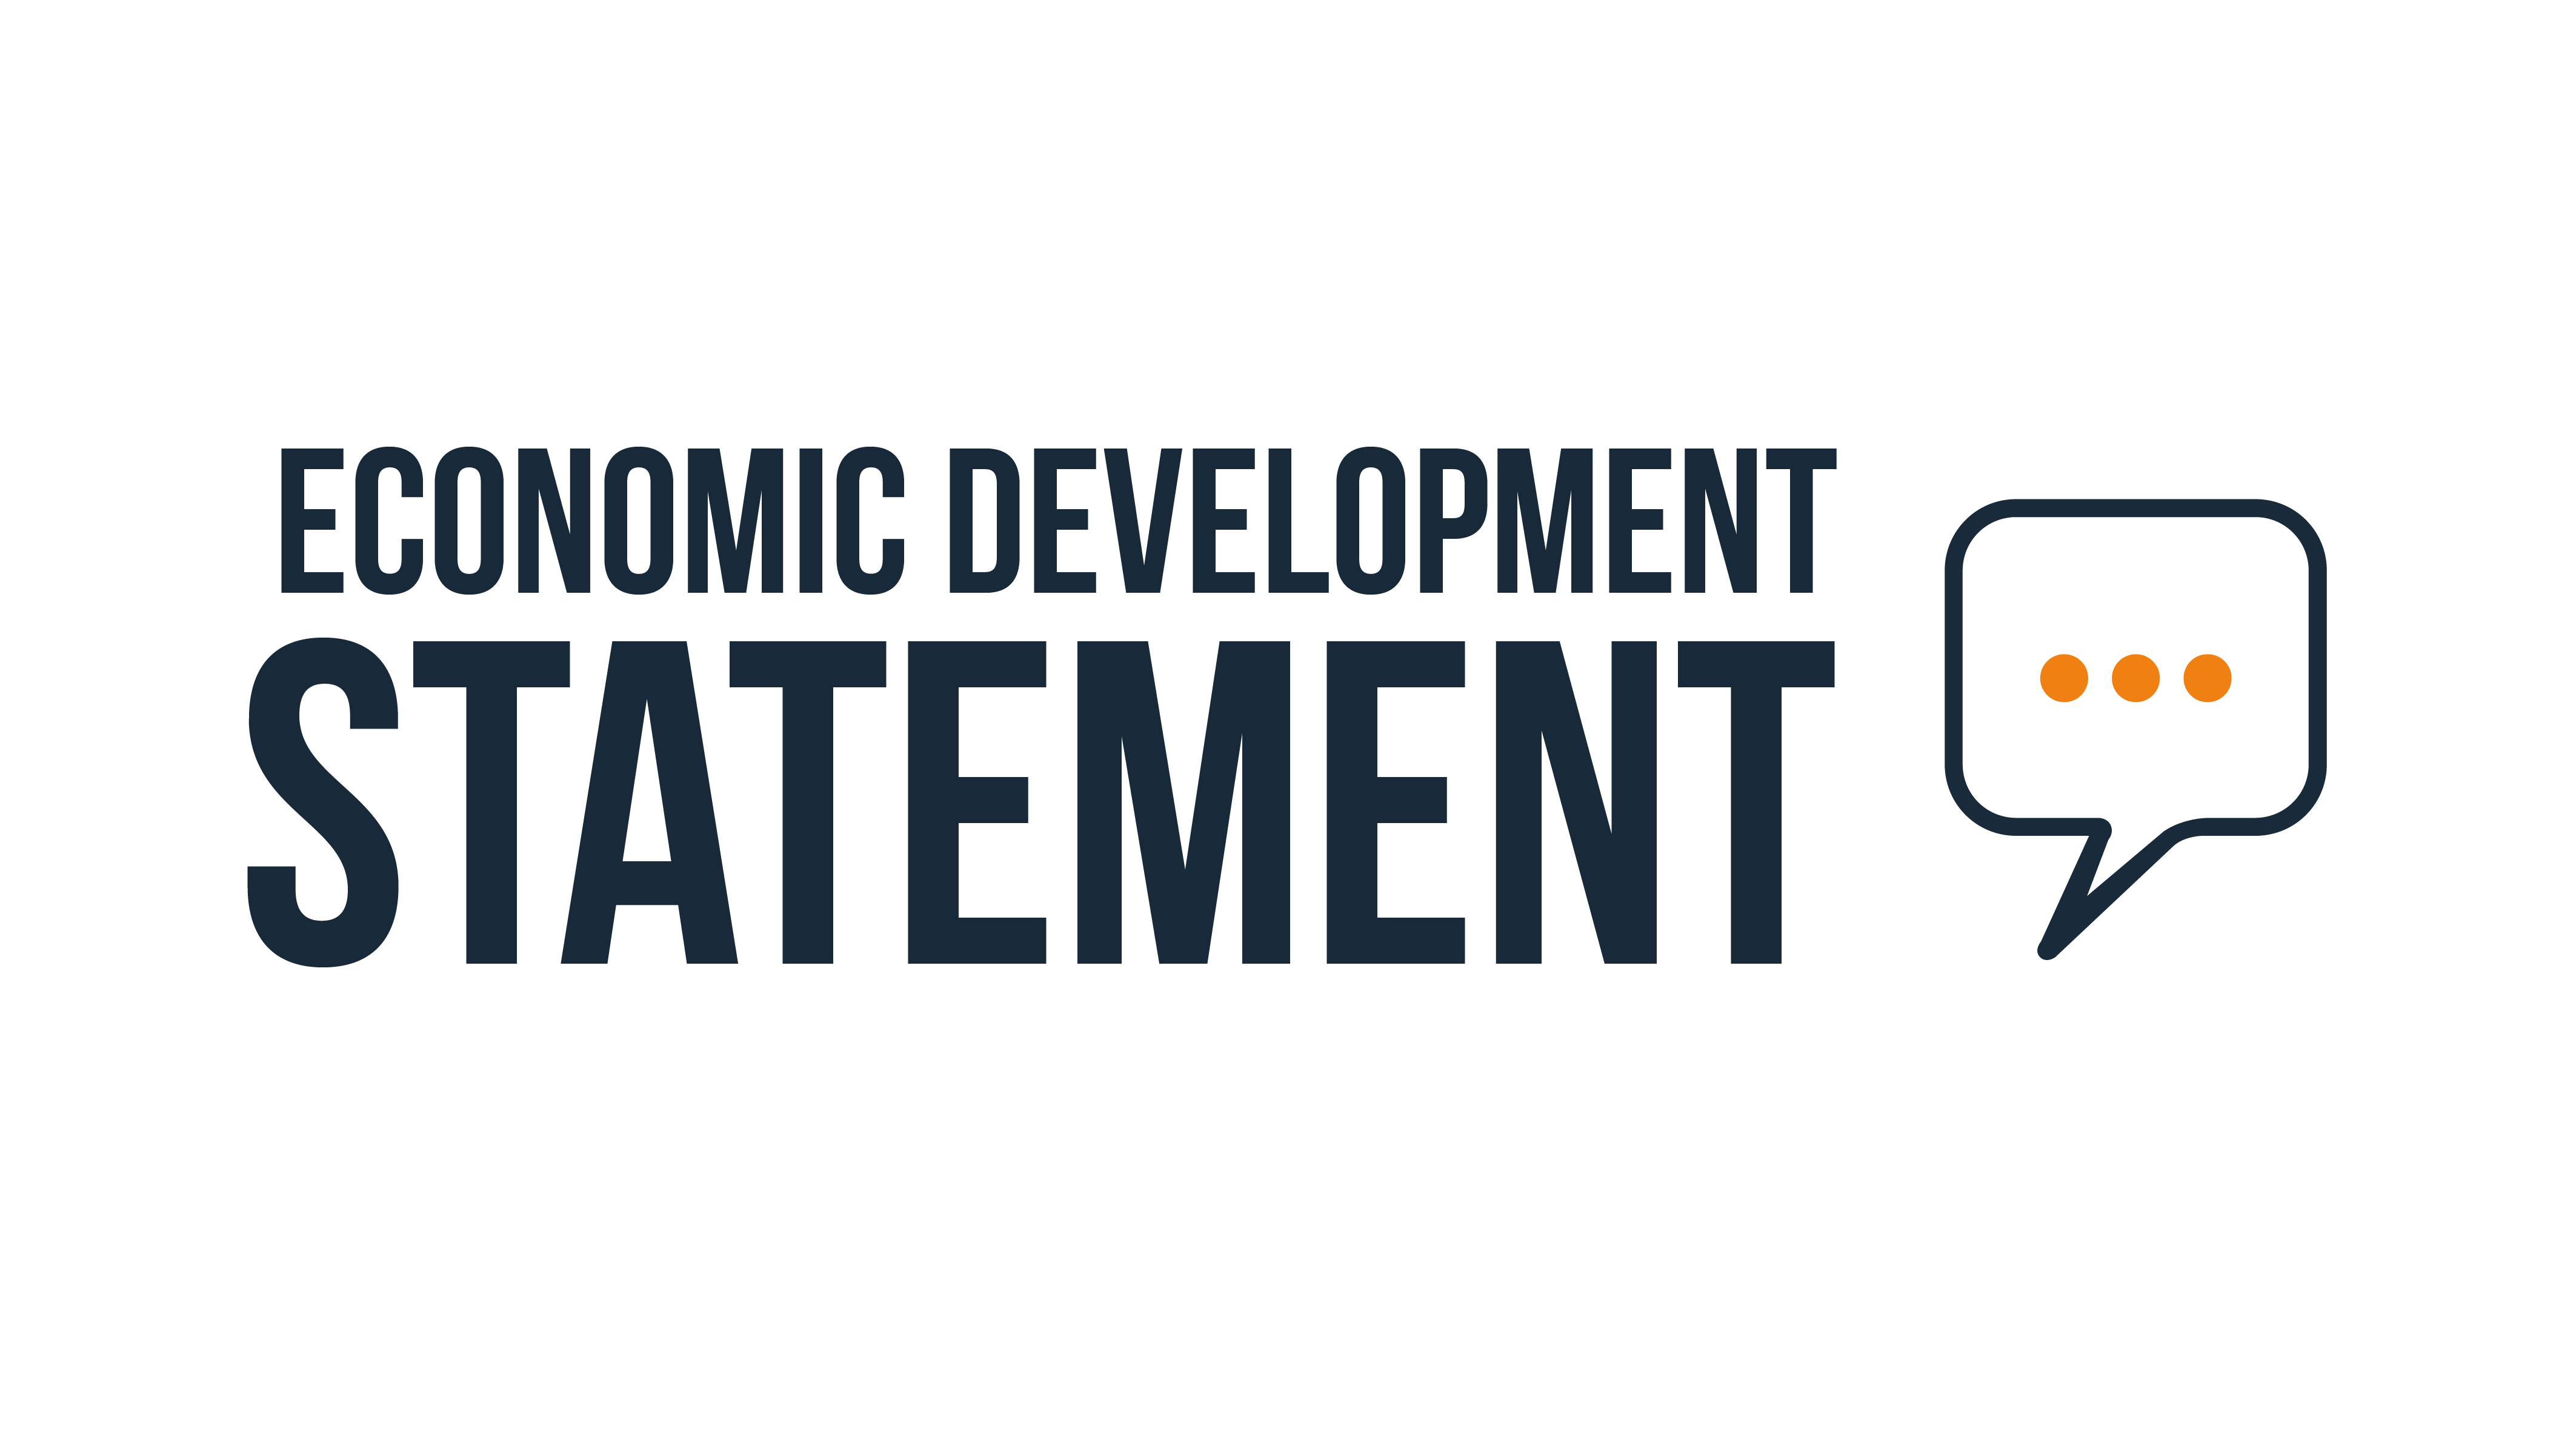 Economic Development statement